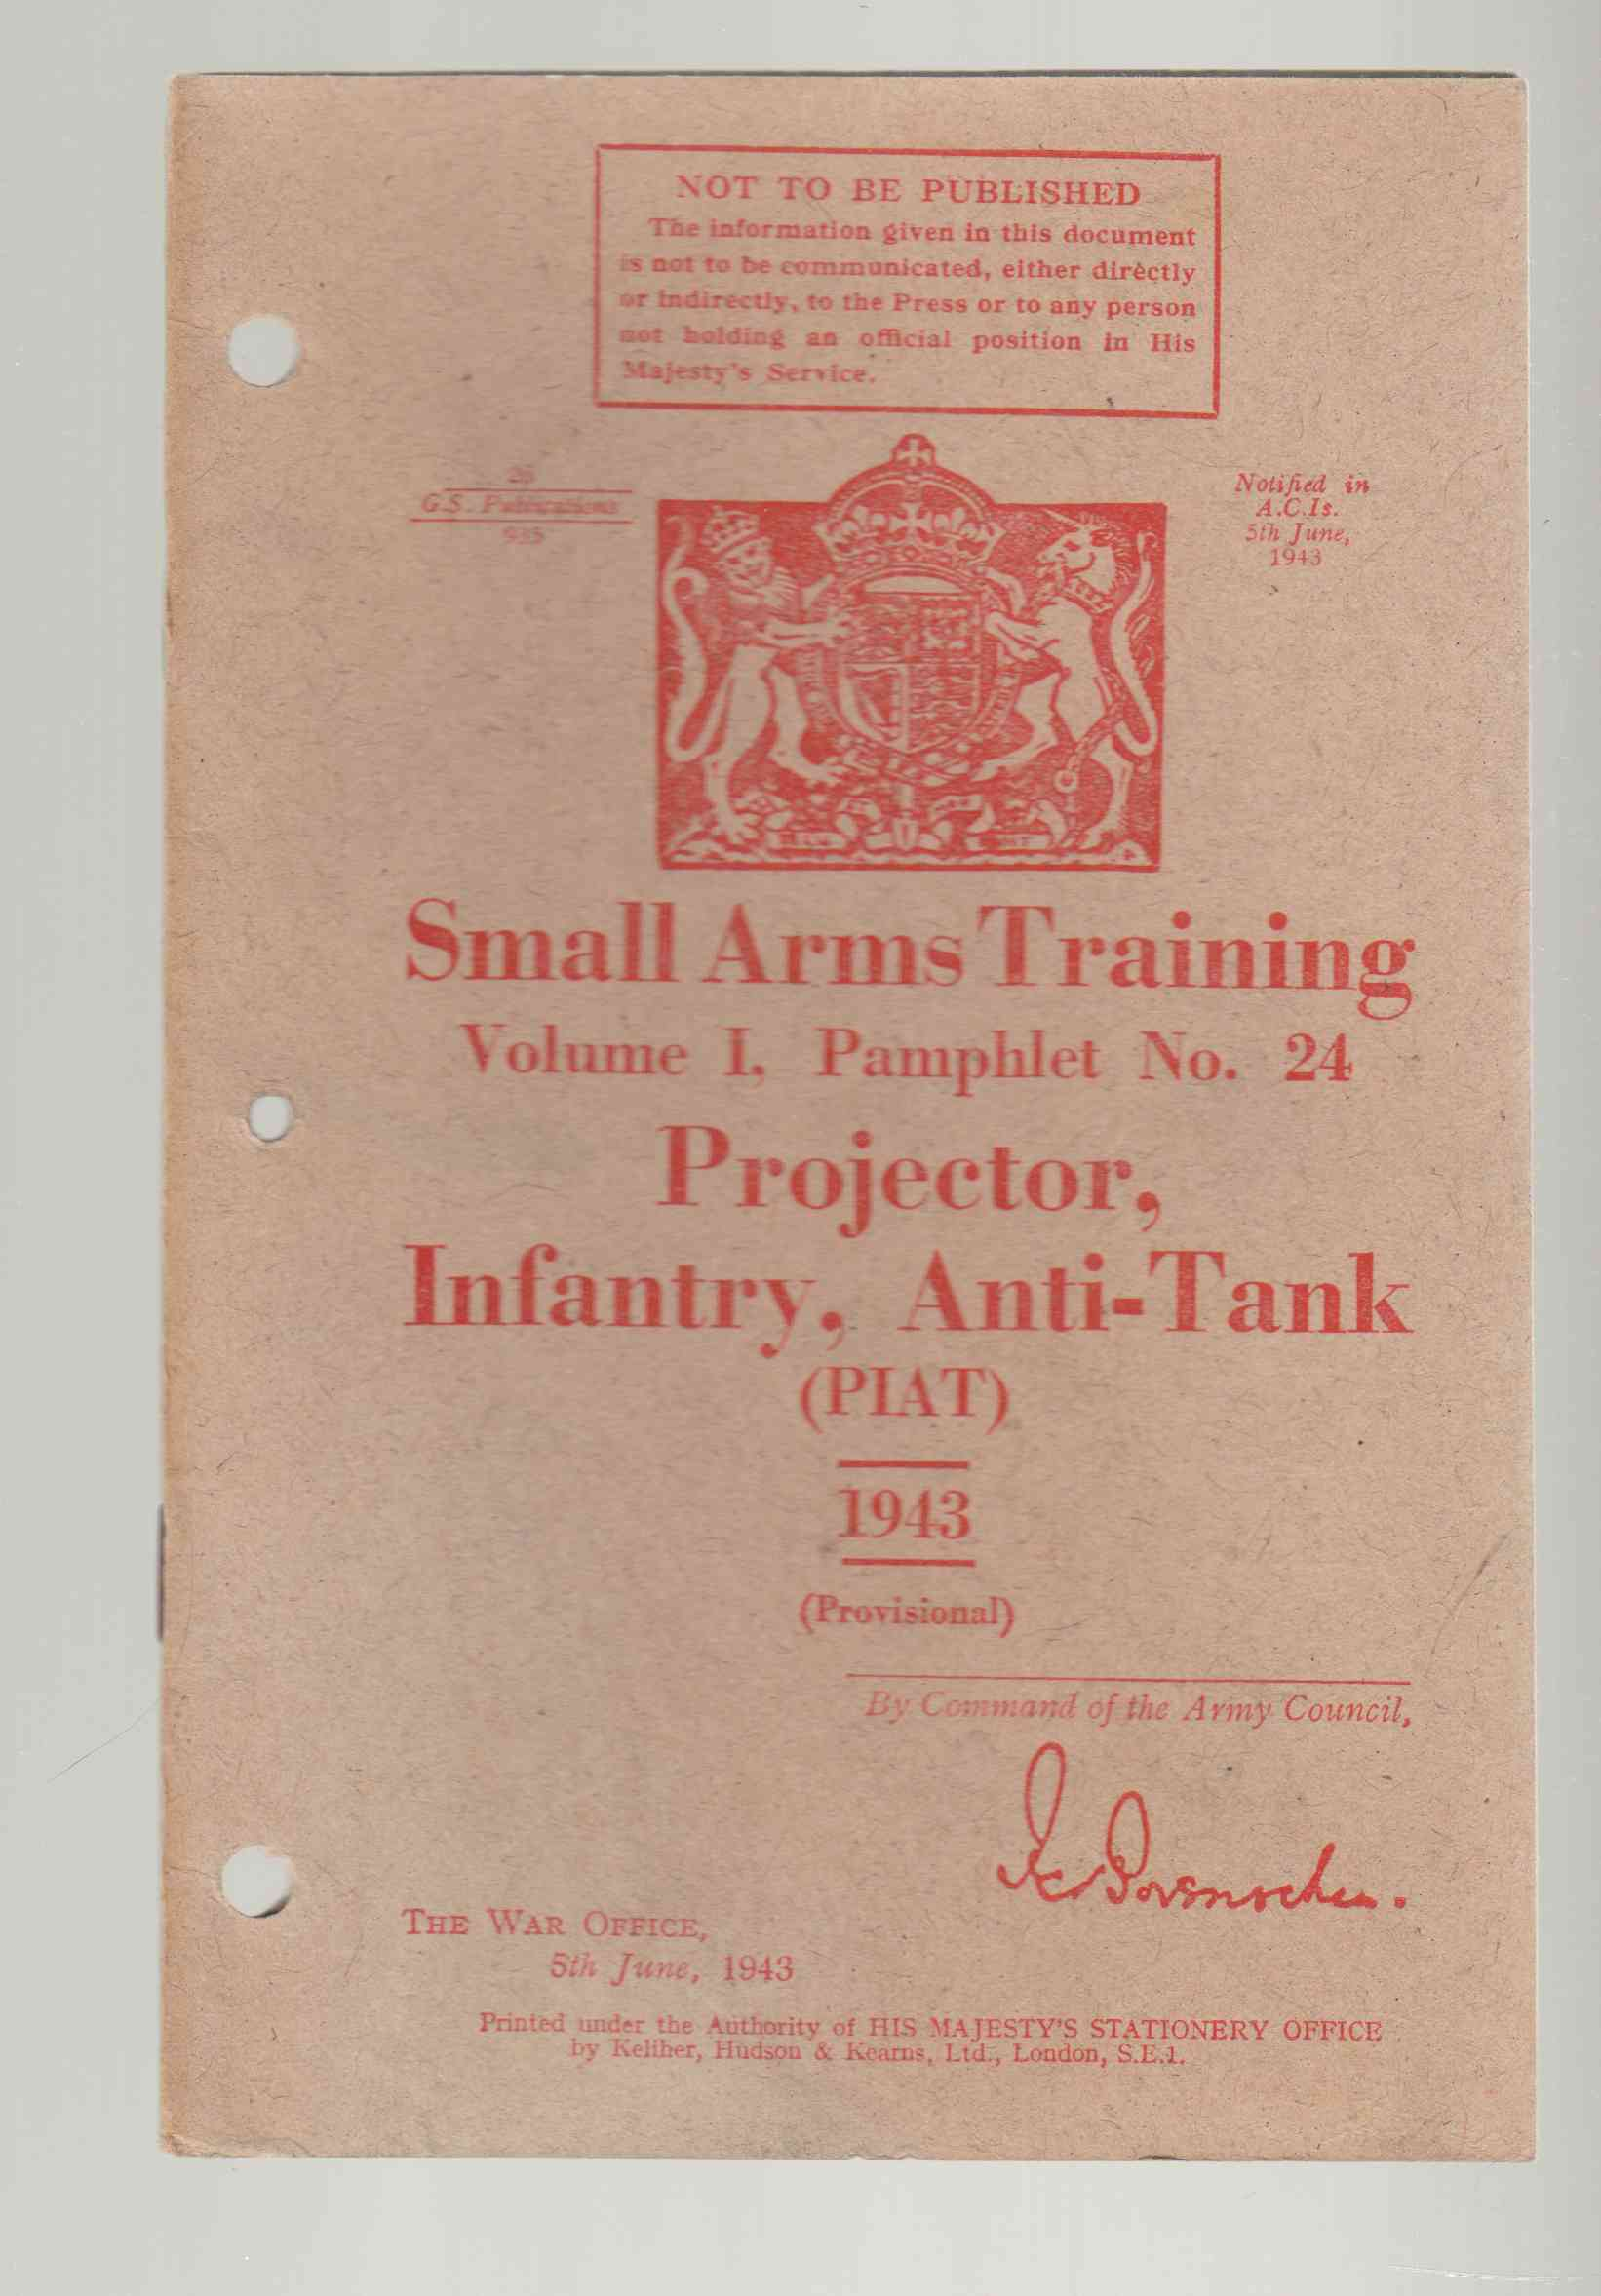 Image for Small Arms Training Volume I, Pamphlet No. 24 Projector, Infantry, Anti-Tank (PIAT) 1943 (Provisional)